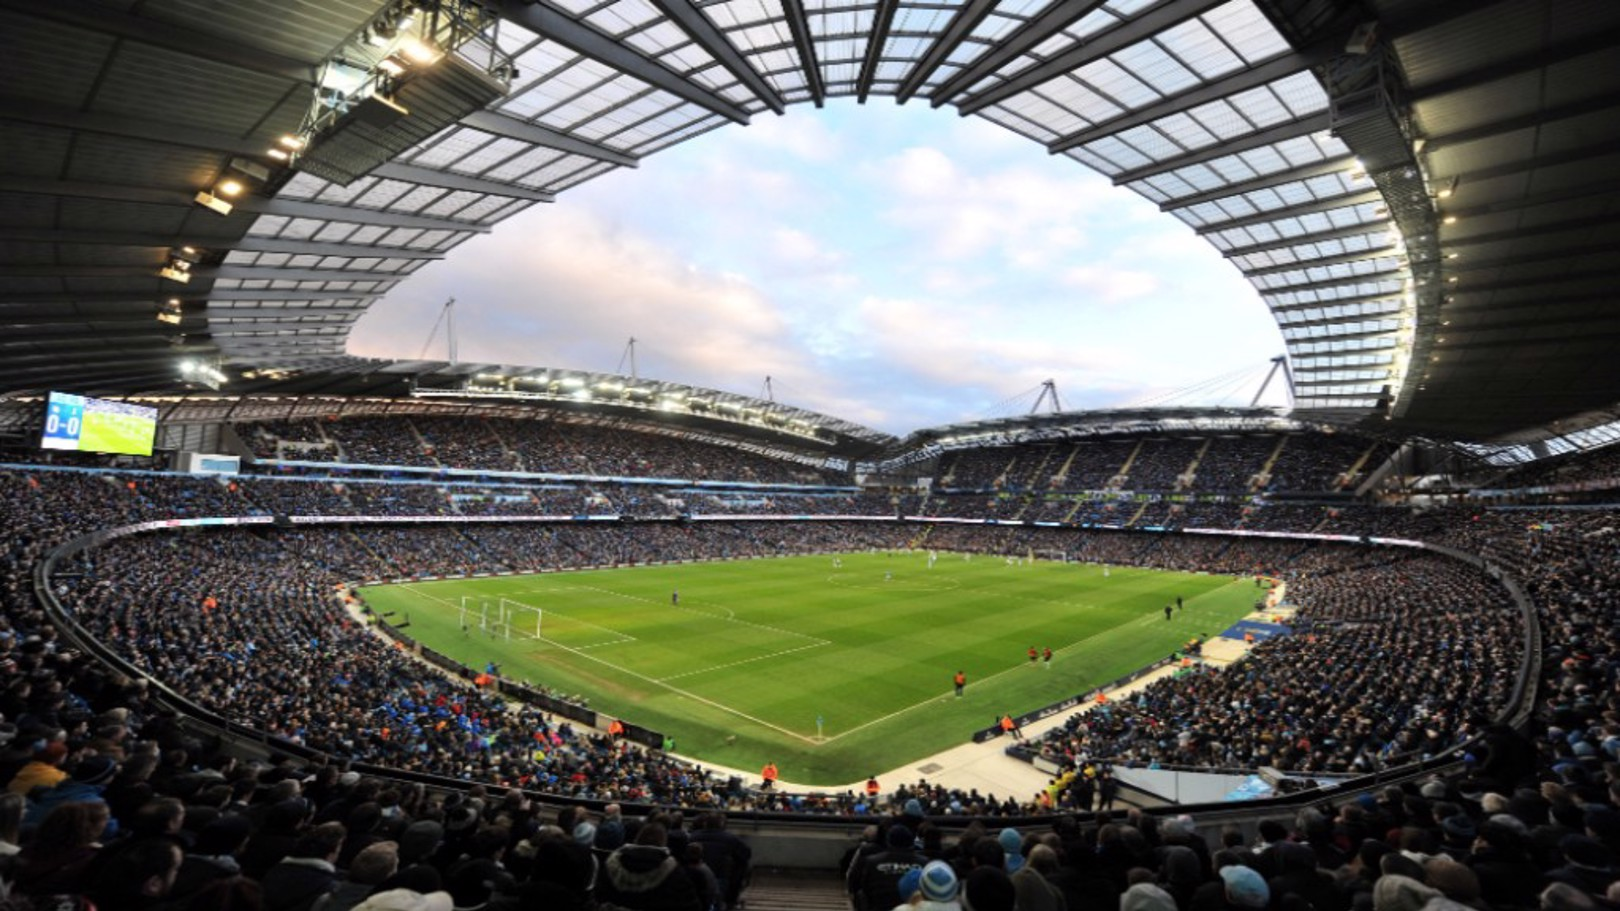 CLUB STATEMENT: Manchester City welcomes the opening of a formal UEFA investigation